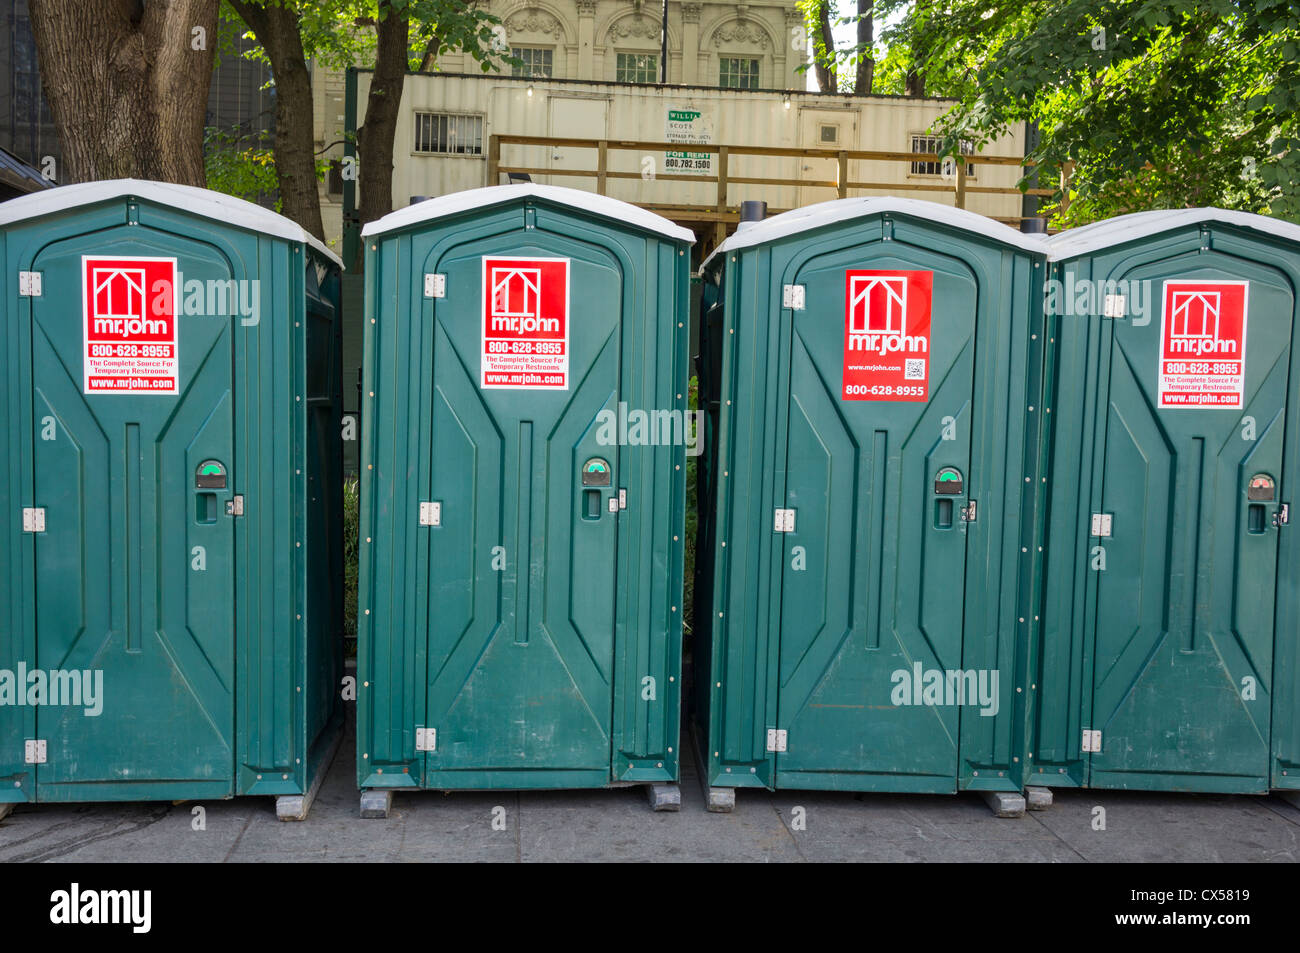 A line of public restrooms in a pocket park between City Hall and the Manhattan entrance to the Brooklyn Bridge - Stock Image